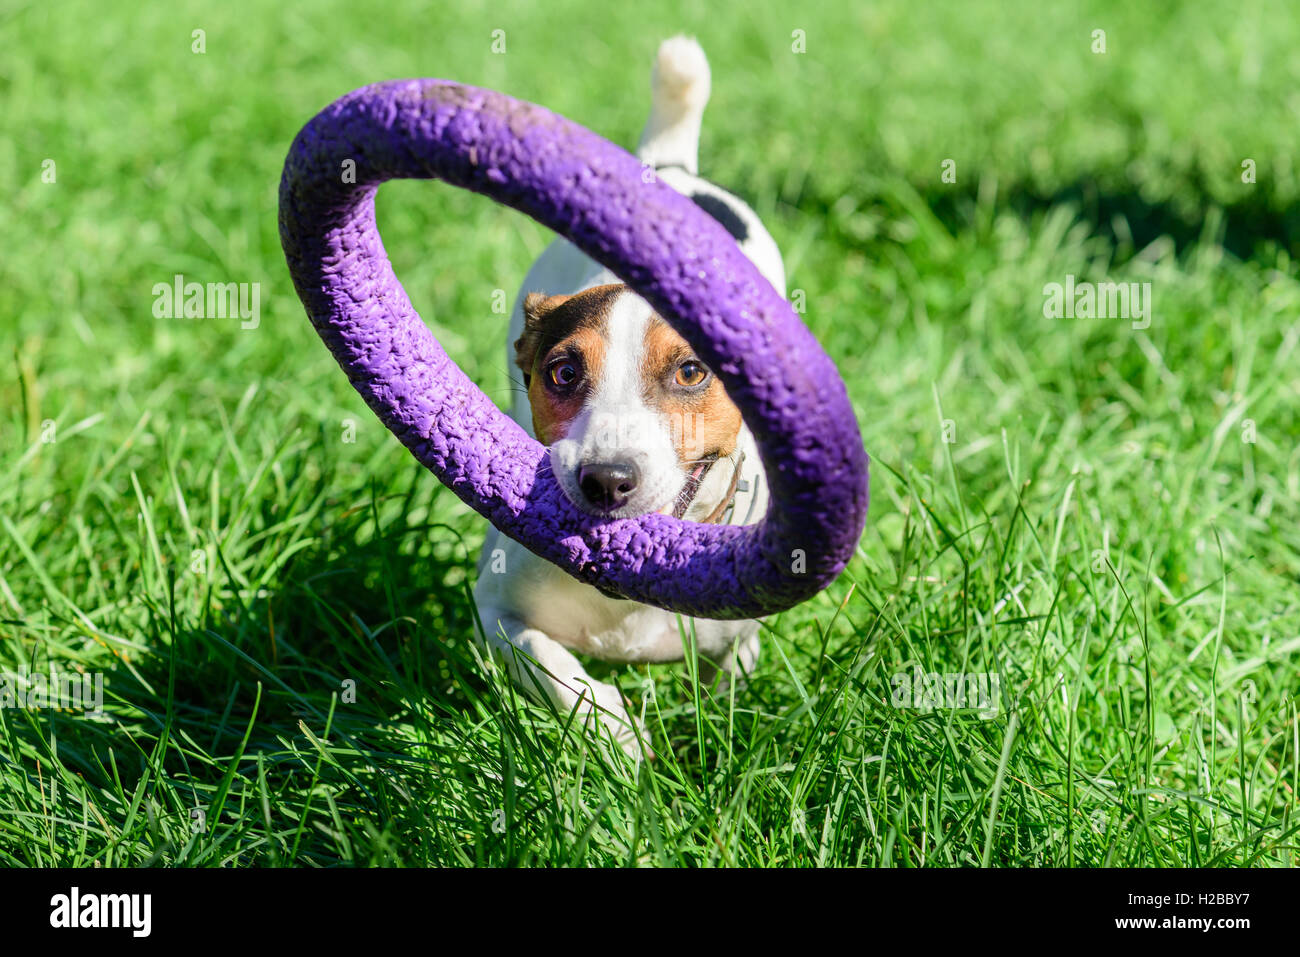 Dog carrying big toy inviting you to play - Stock Image